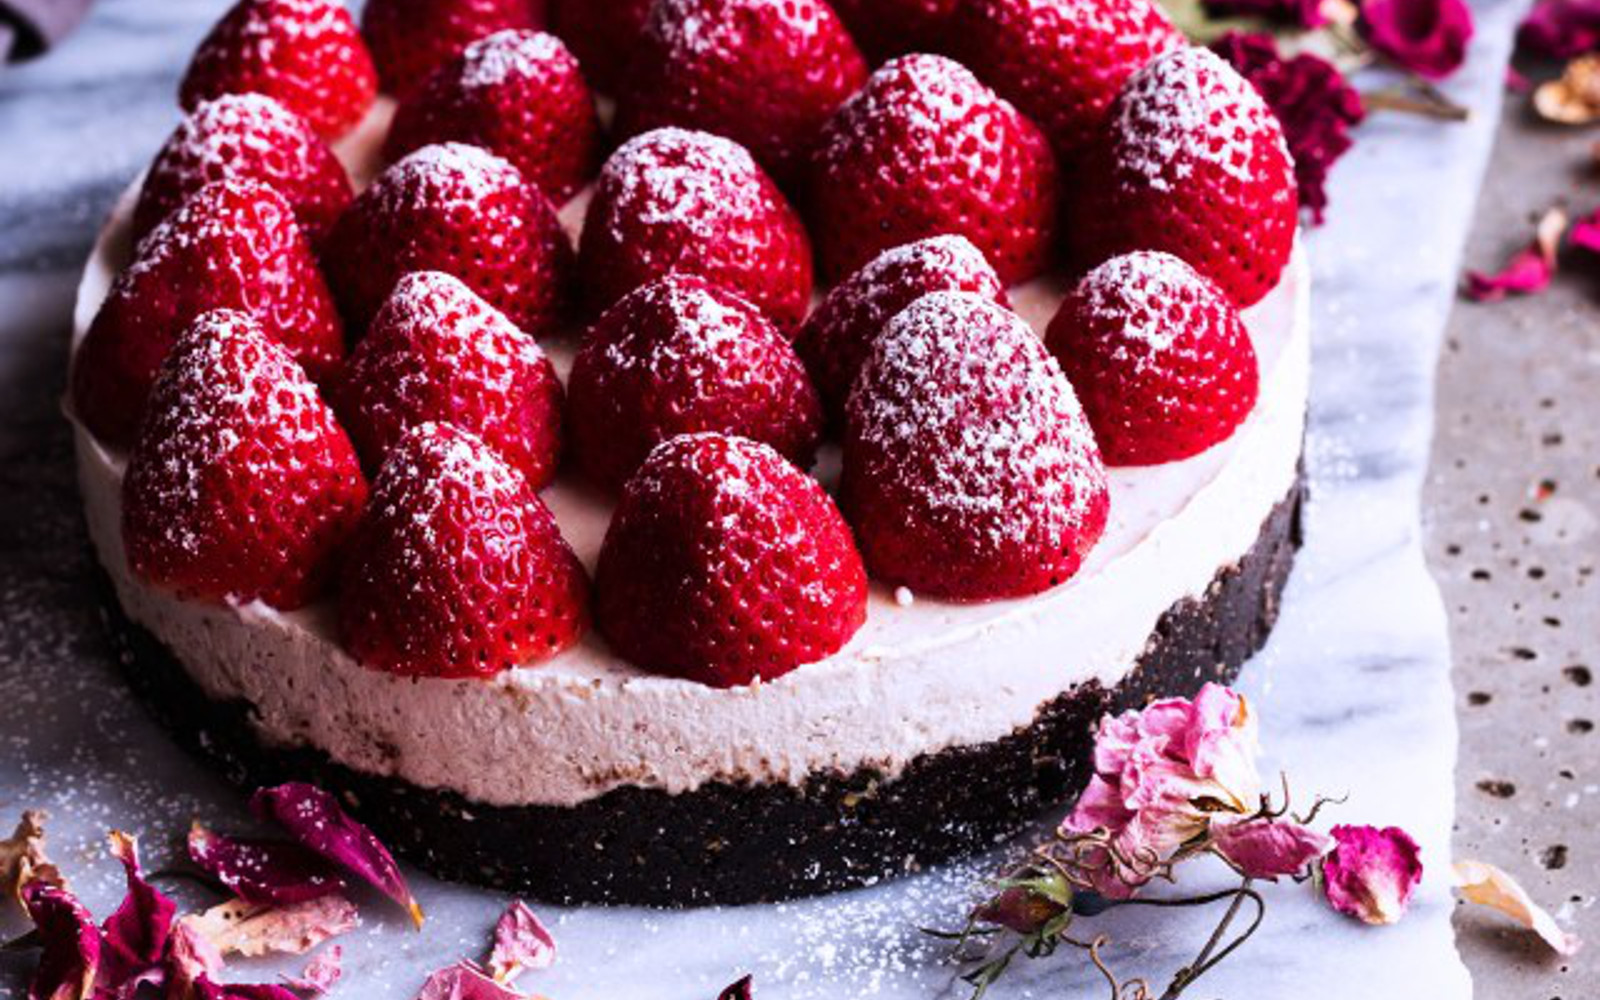 Vegan Gluten-Free Strawberries and Cream Cheesecake Topping with Fresh Strawberries